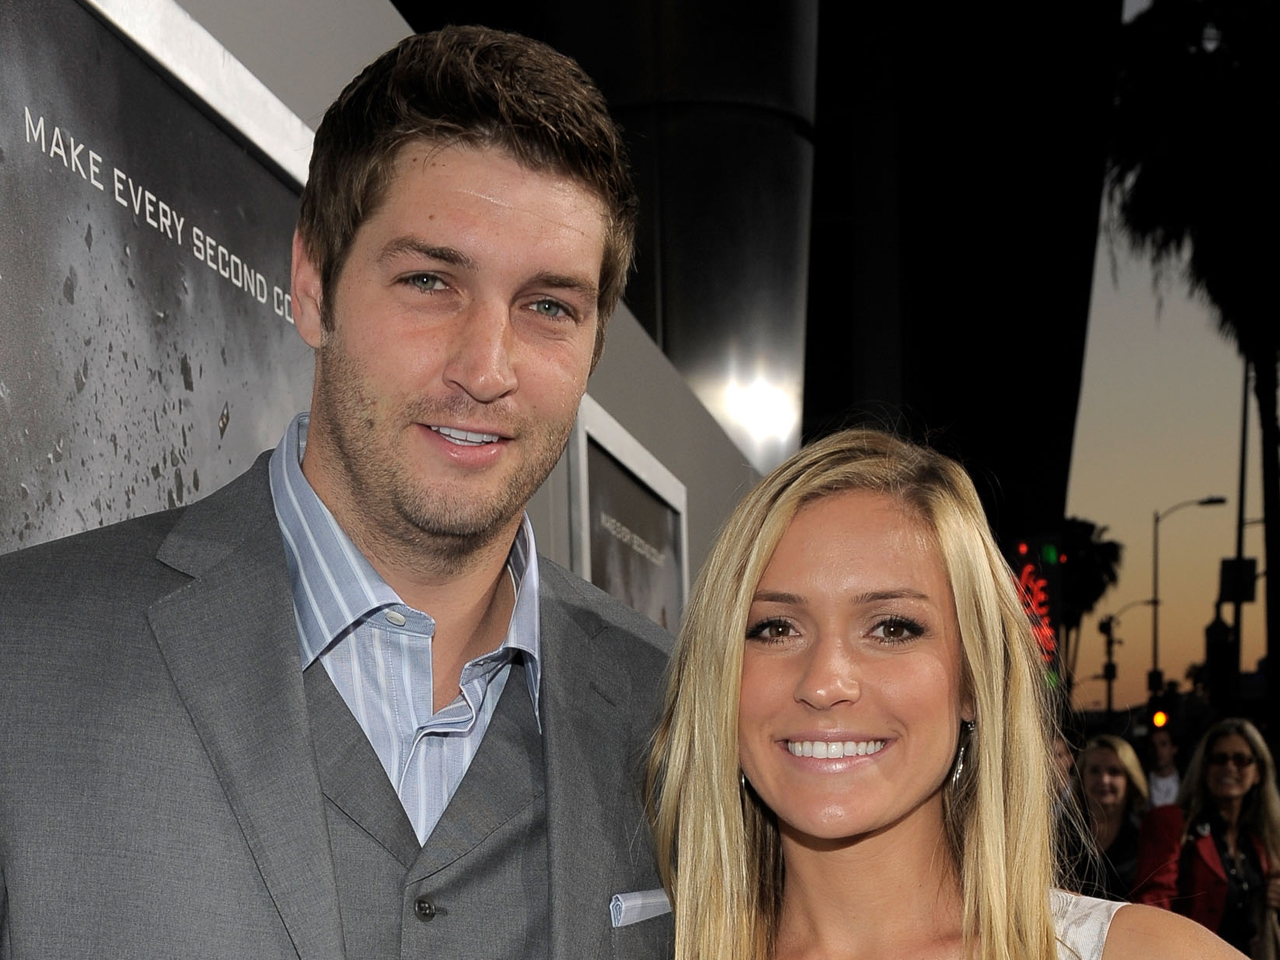 Kristin Cavallari Wedding.Kristin Cavallari And Jay Cutler S Wedding Registry Revealed Cbs News